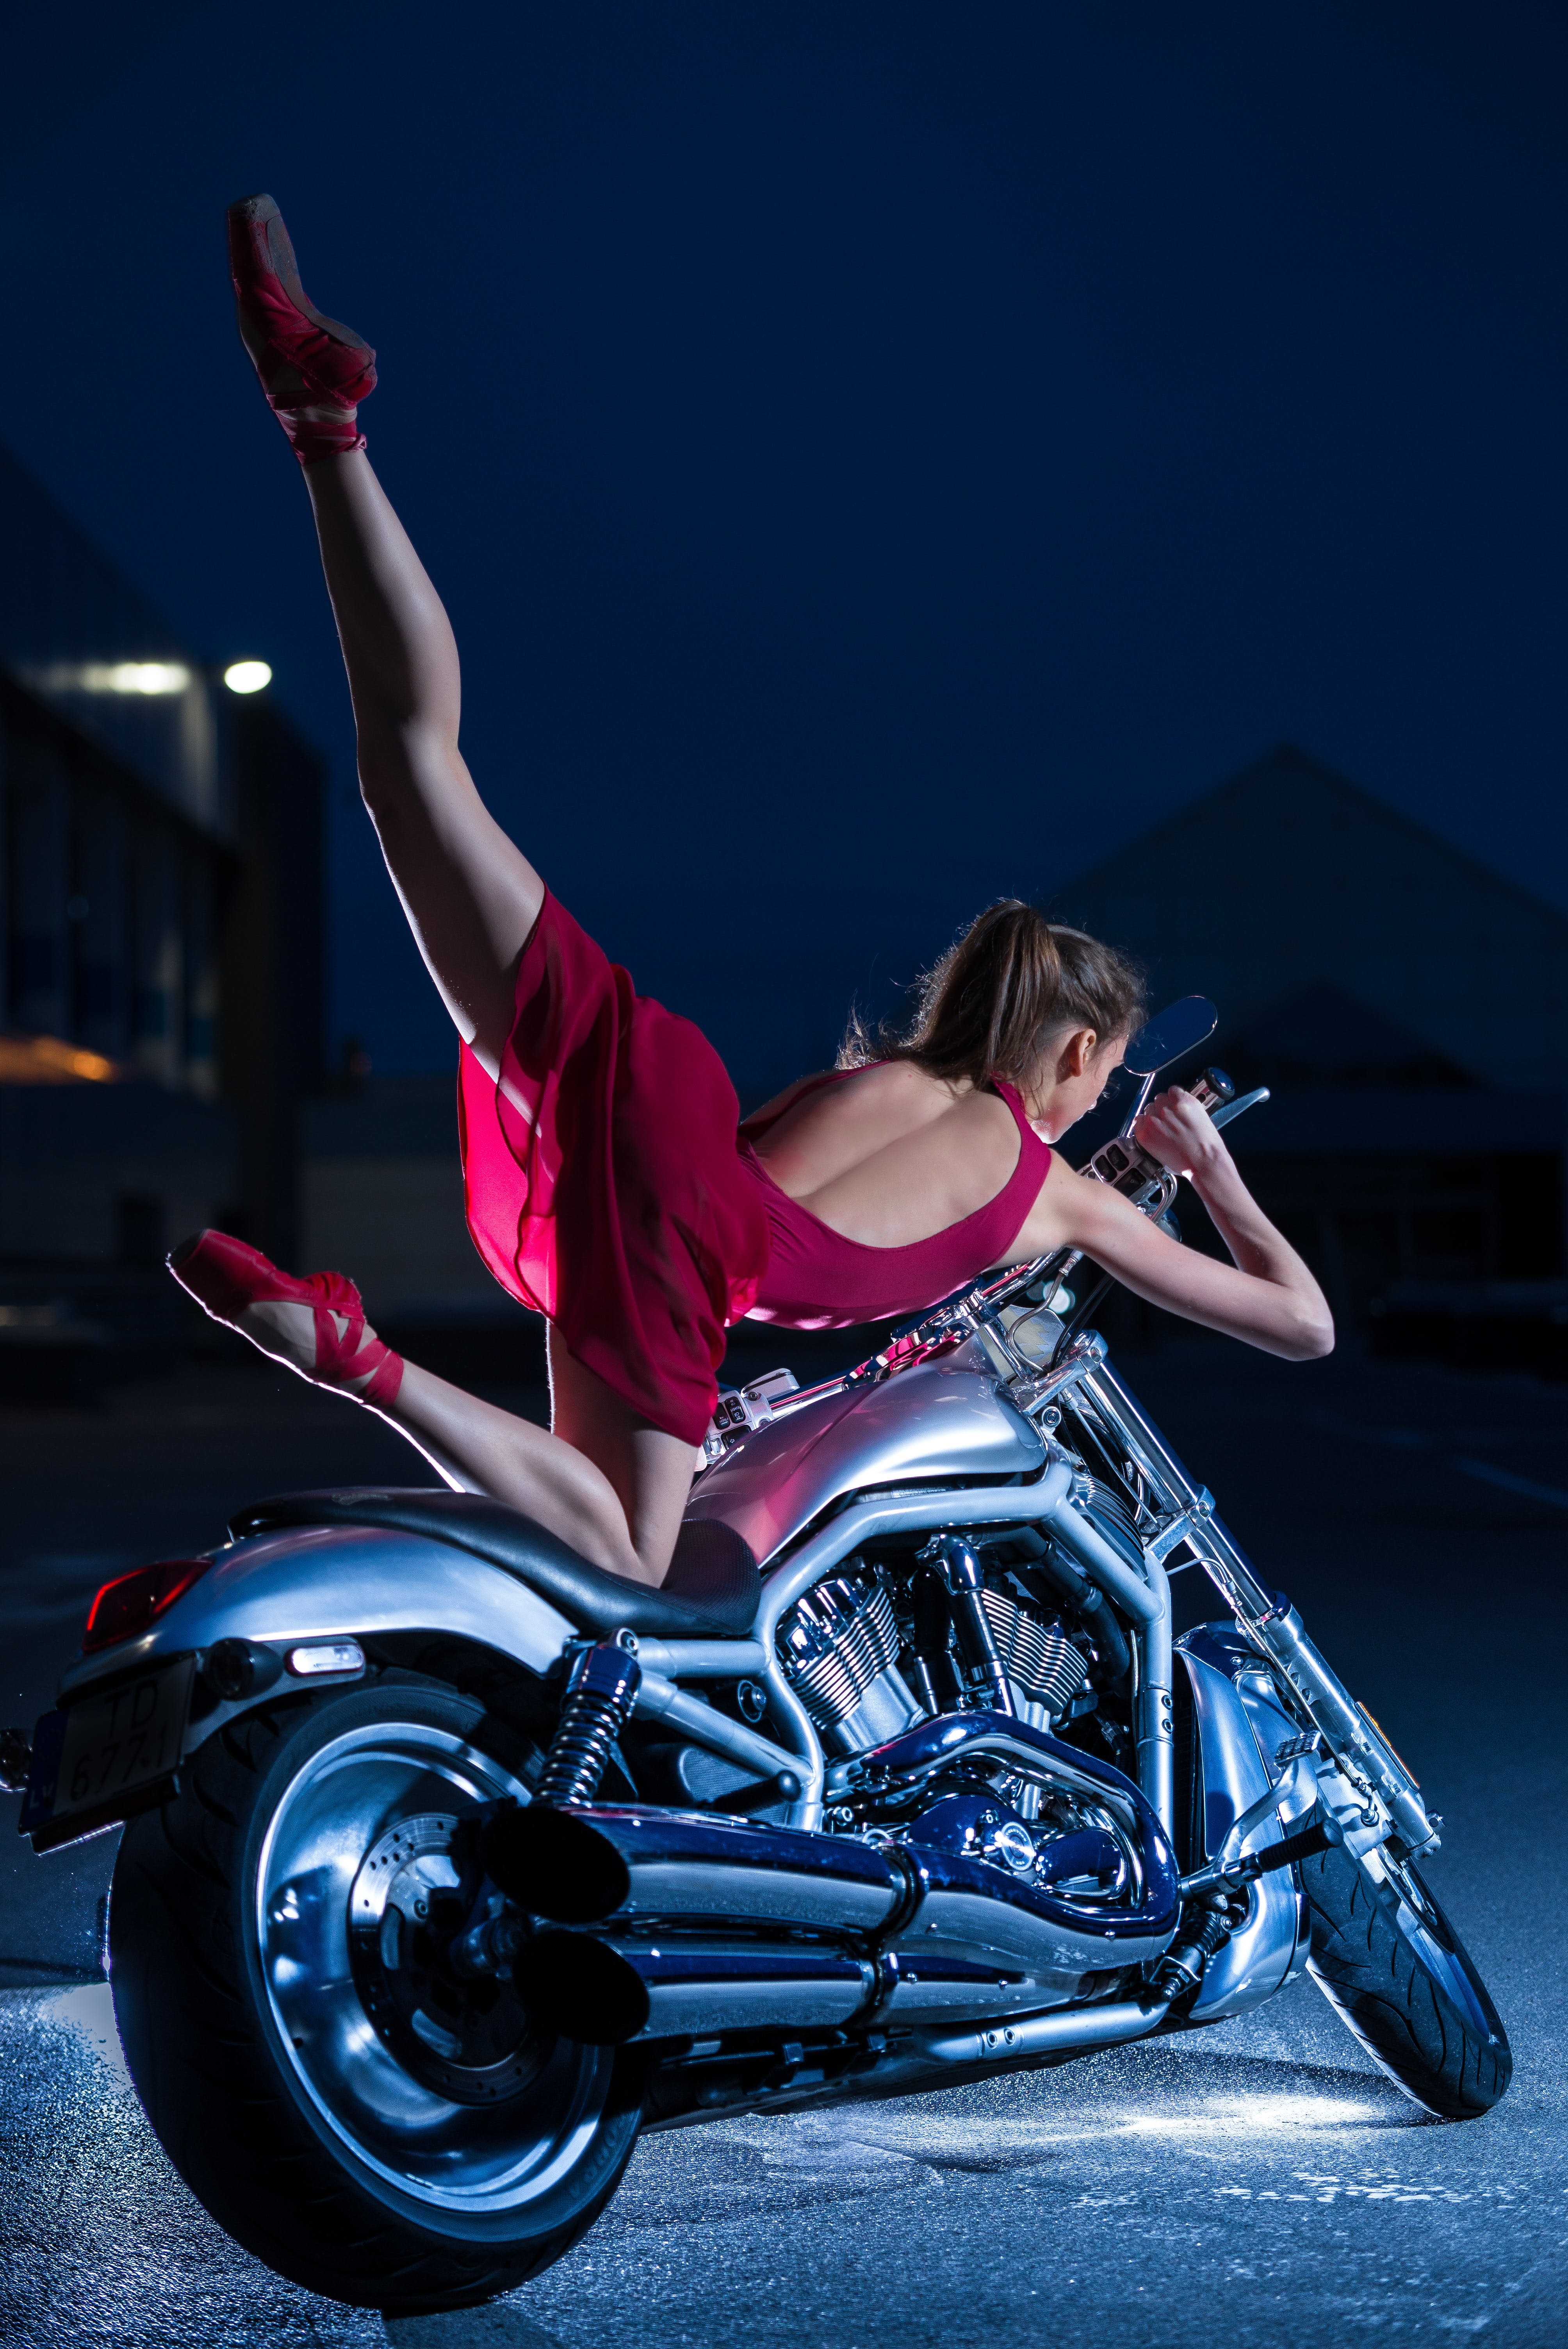 Woman Wearing Purple Dress Ride on Motorcycle during Nighttime